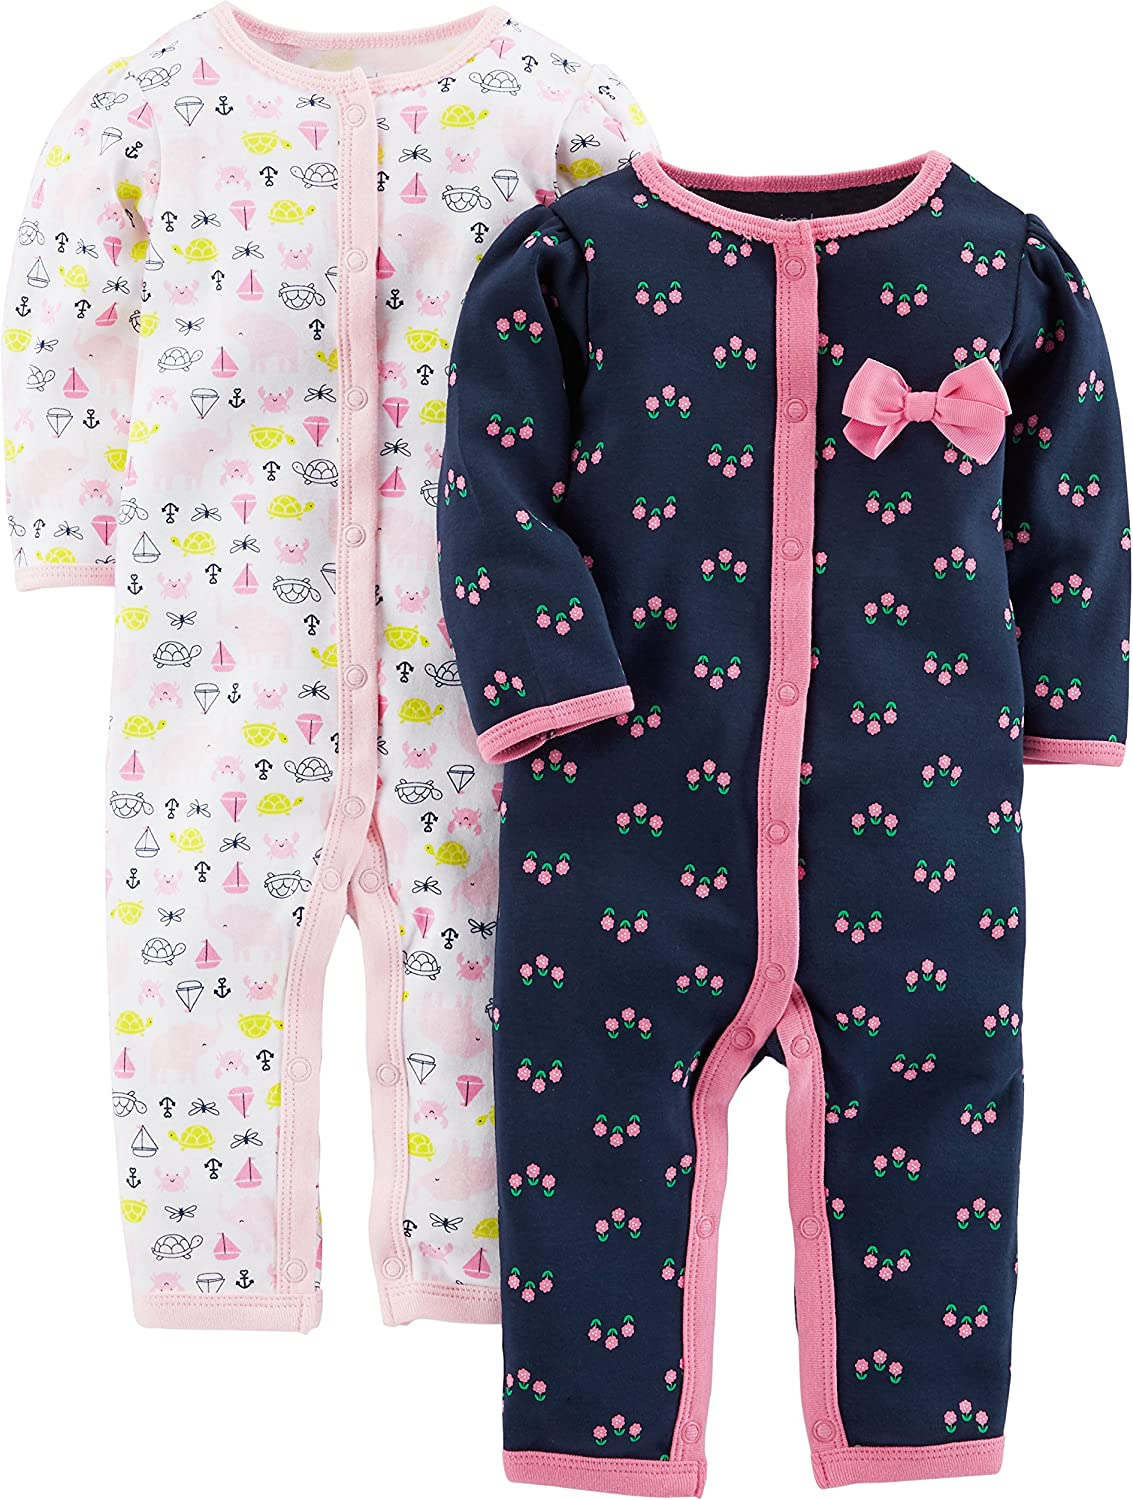 Newborn Elephant//Flowers with Cuffs Simple Joys by Carters Baby Girls 2-Pack Cotton Footless Sleep and Play